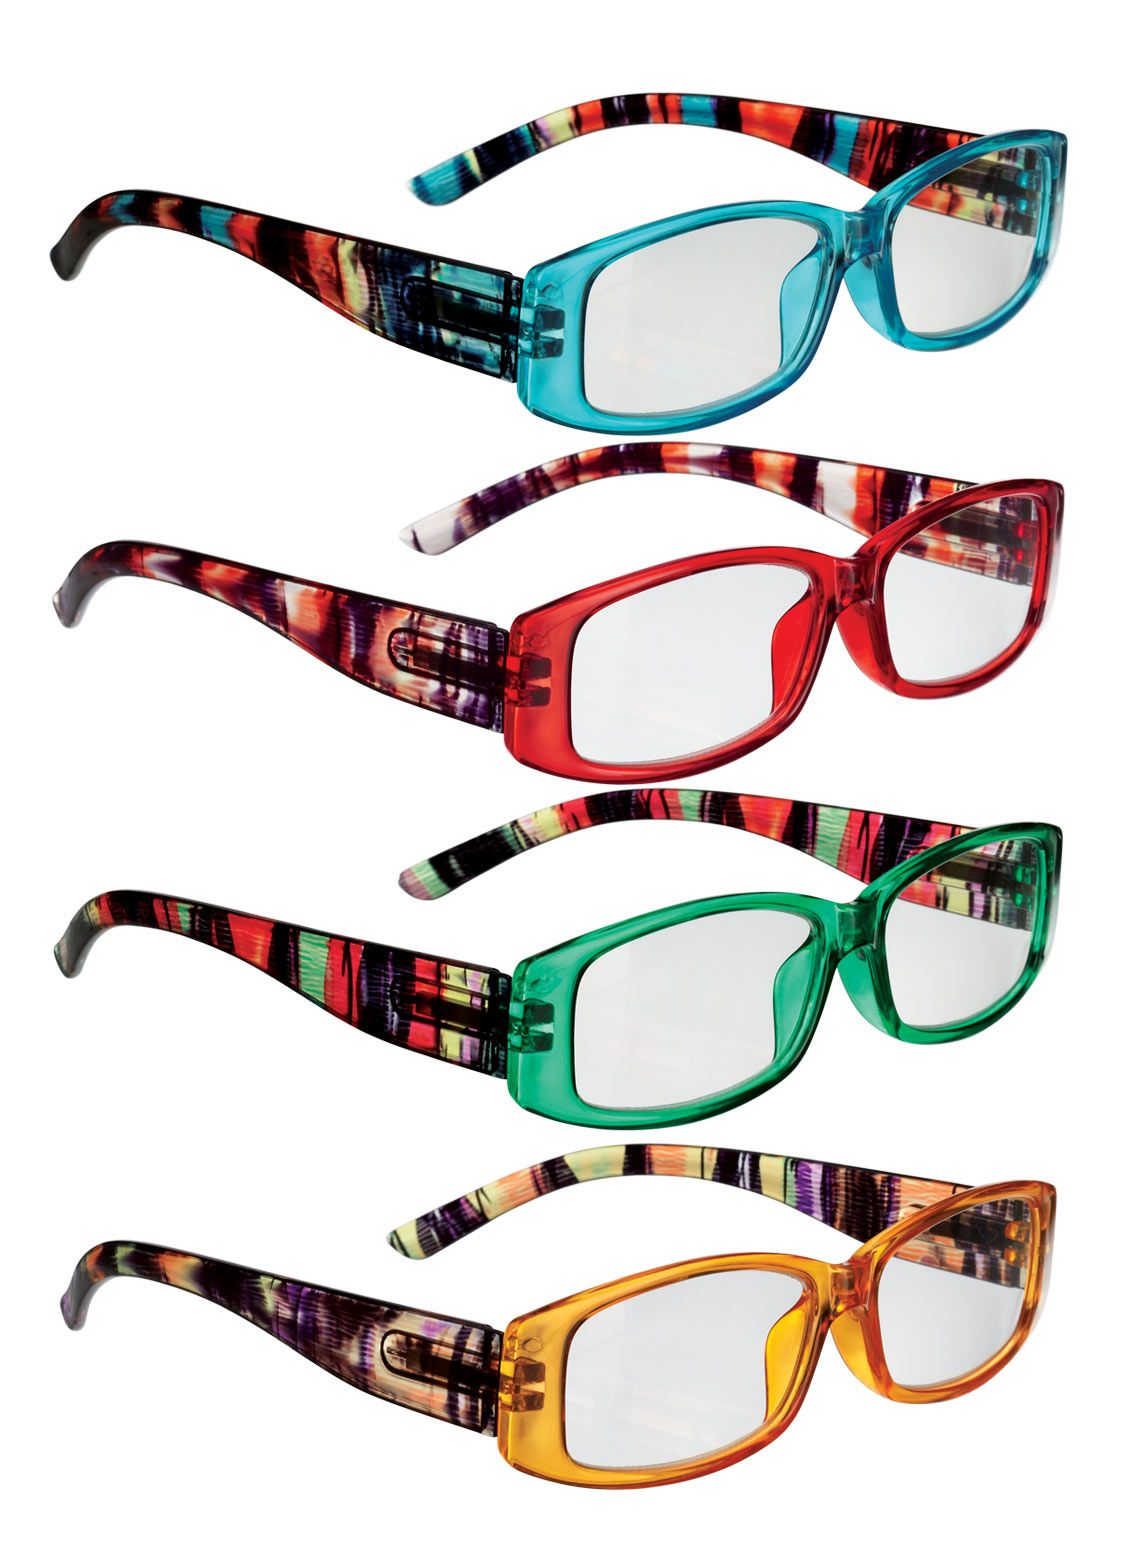 830d6311f4d Colorful reading glasses favorite eyeglasses pinterest jpg 1140x1560 Colorful  eyeglasses